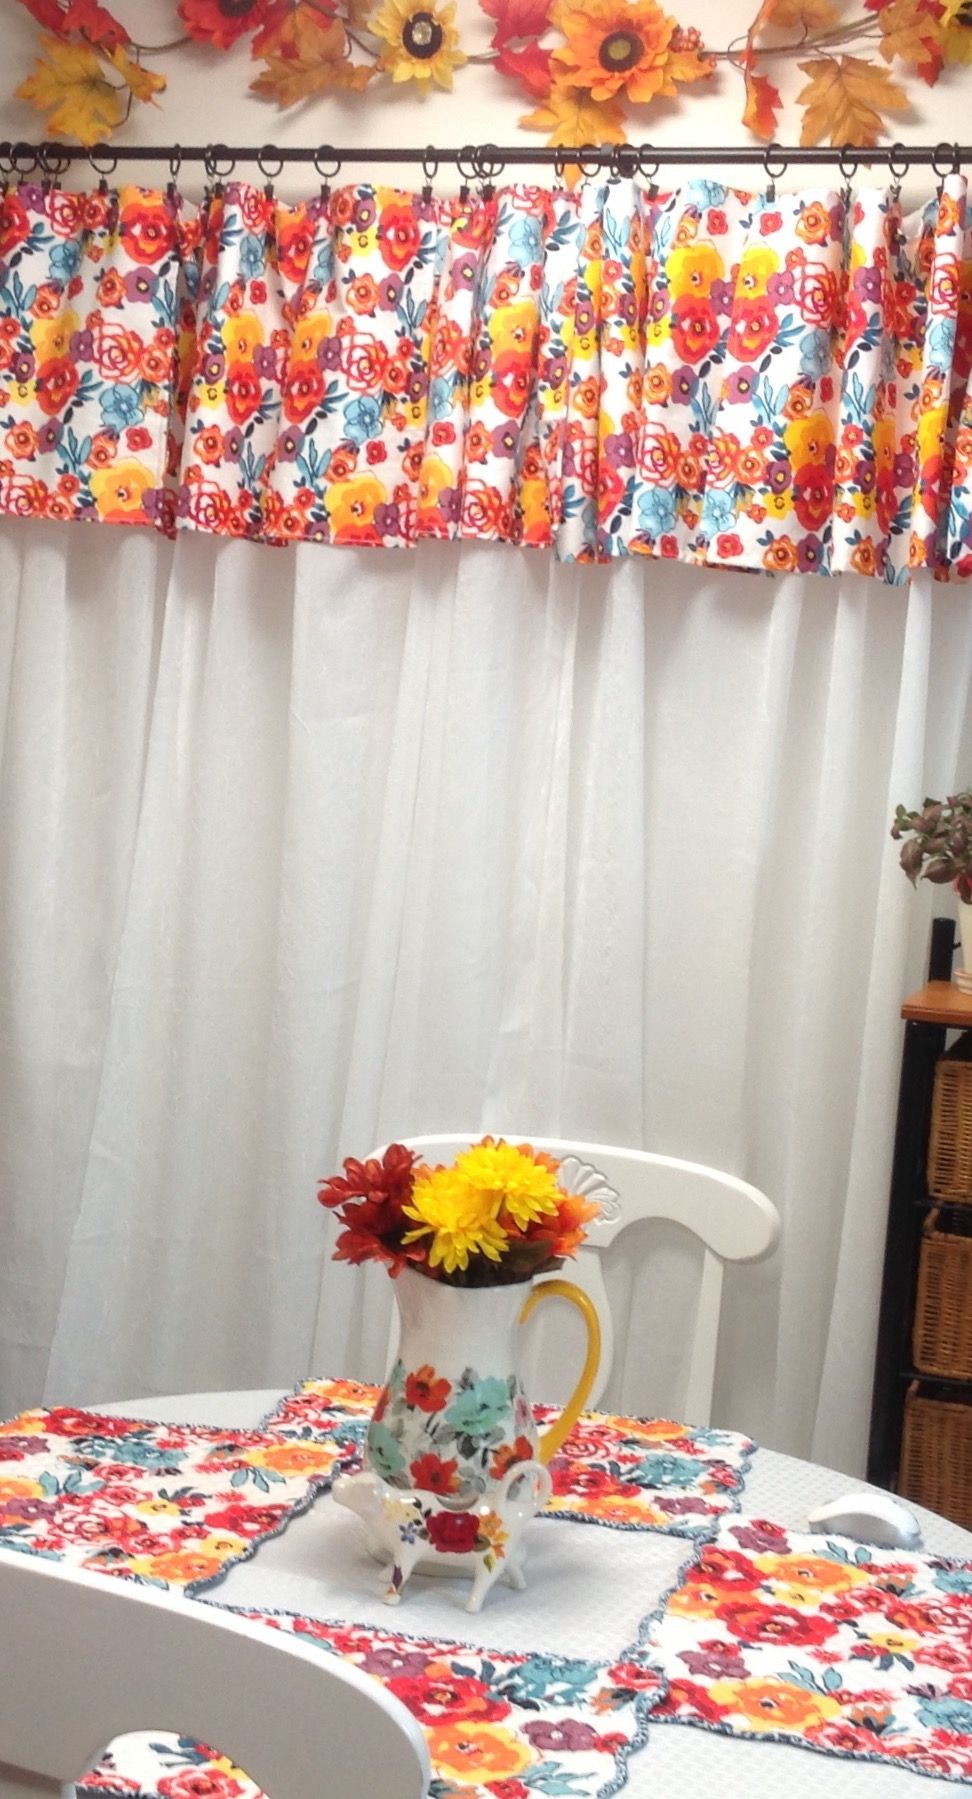 Pioneer woman curtains made using towels | For the Home | Pinterest